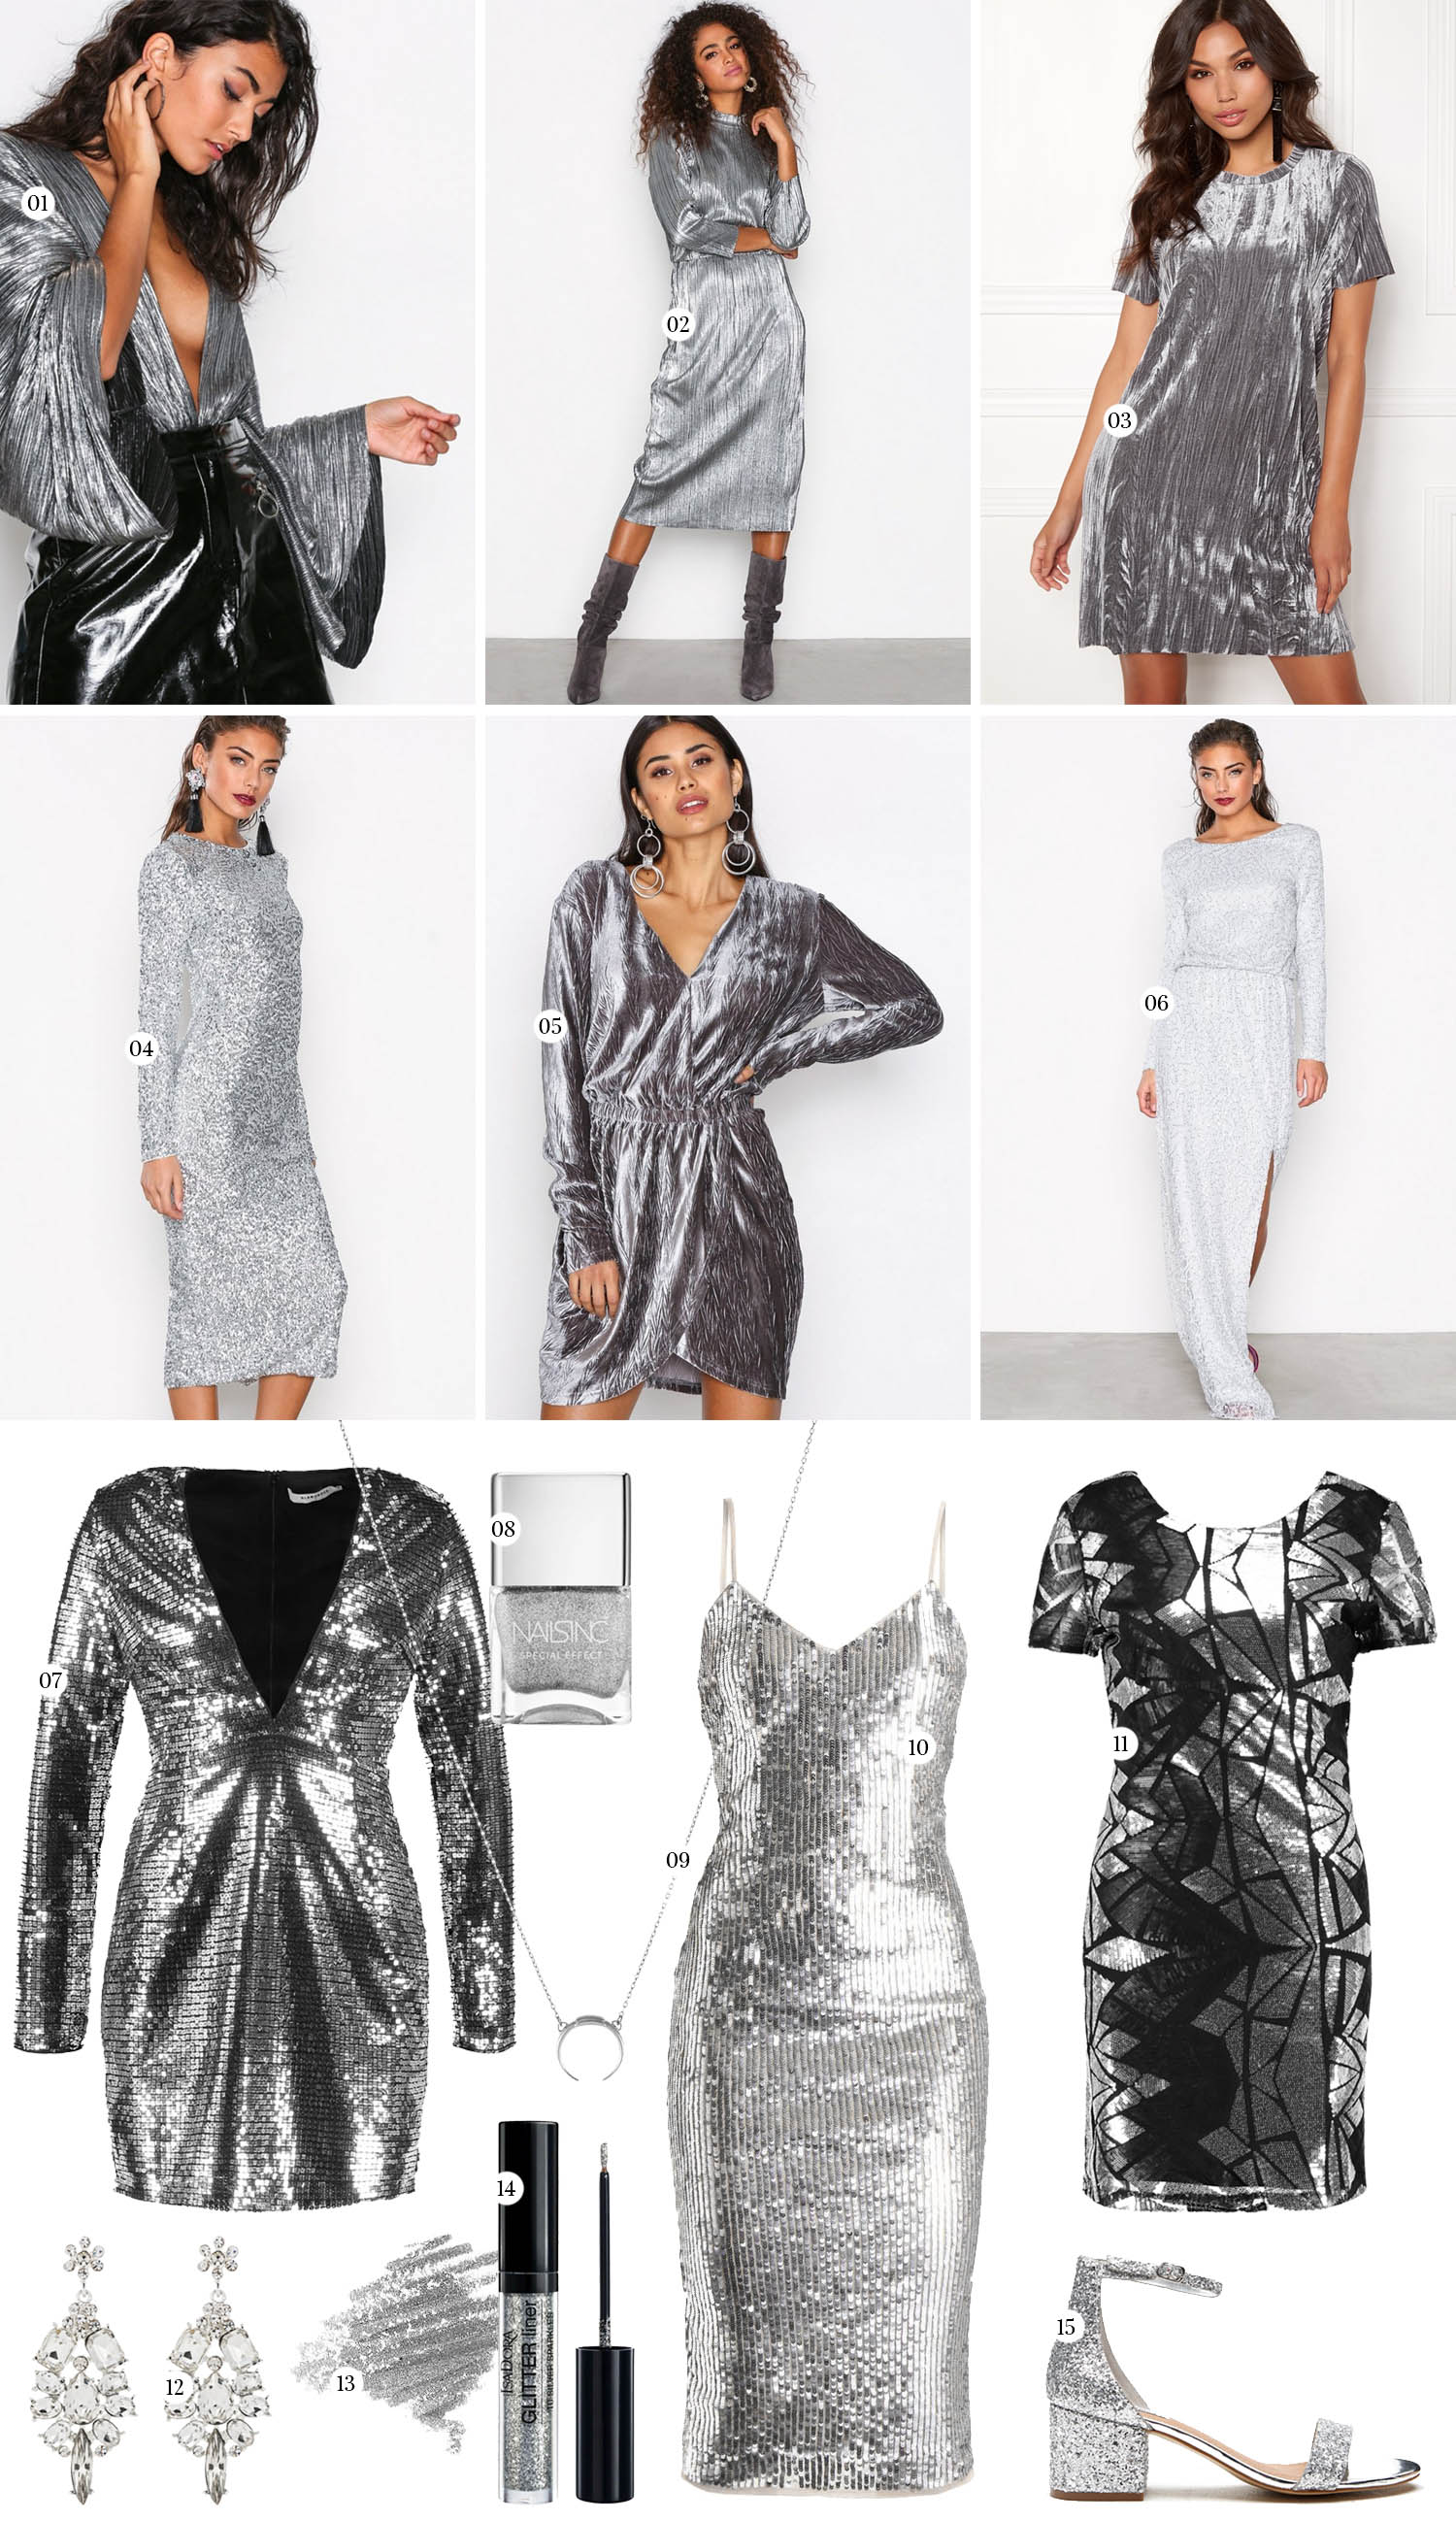 New Year's Eve dresses in Silver